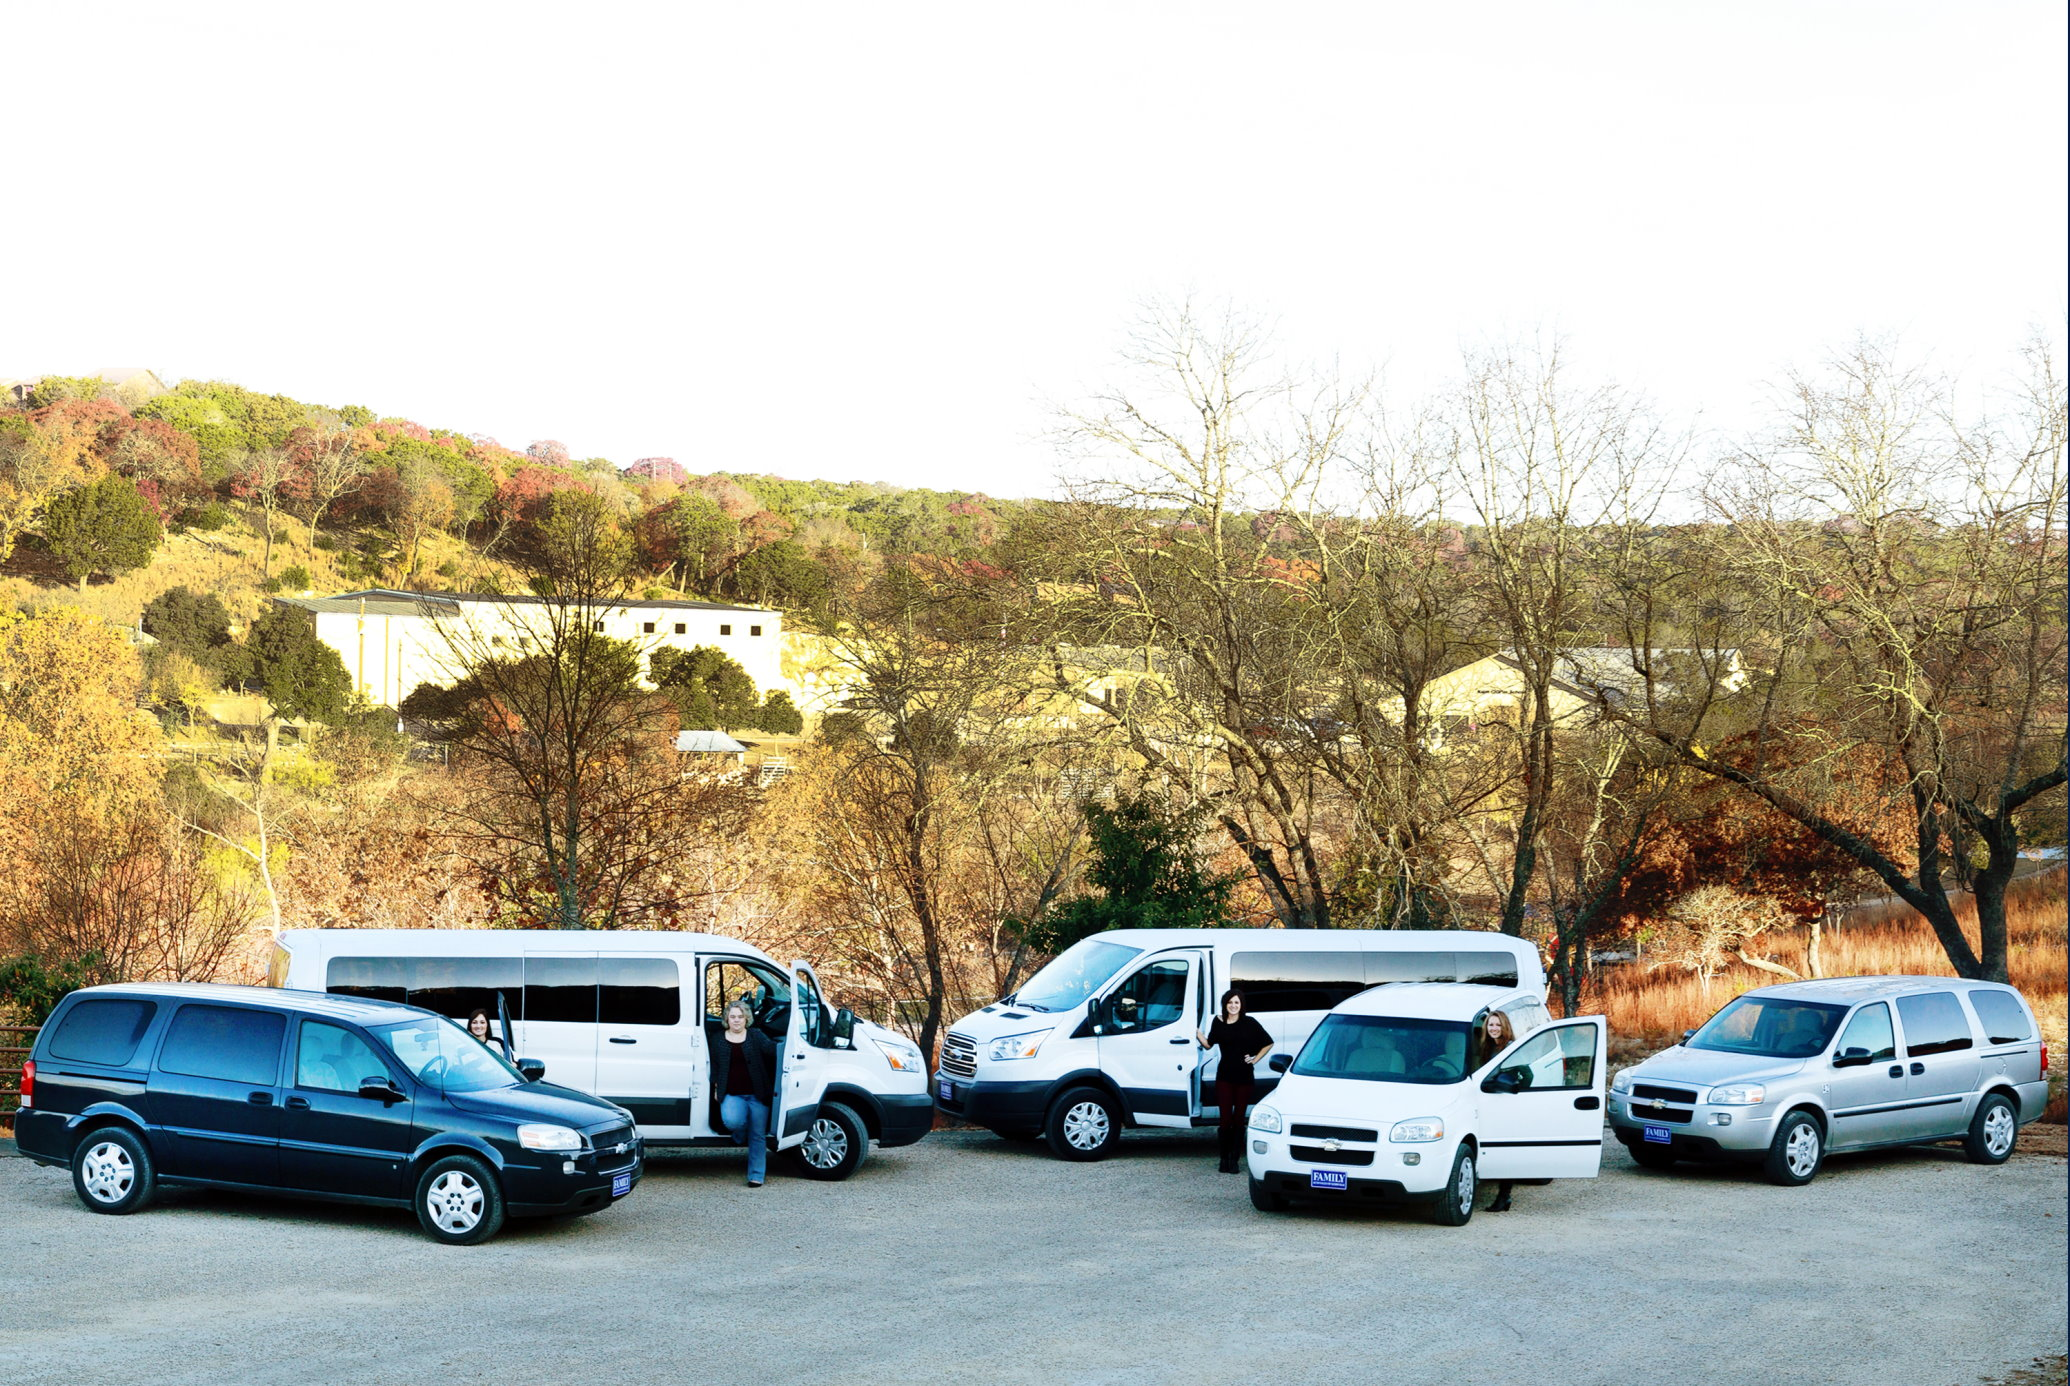 2015- Hill Country Youth Ranch vehicle fleet upgrade, Ingram, Texas.